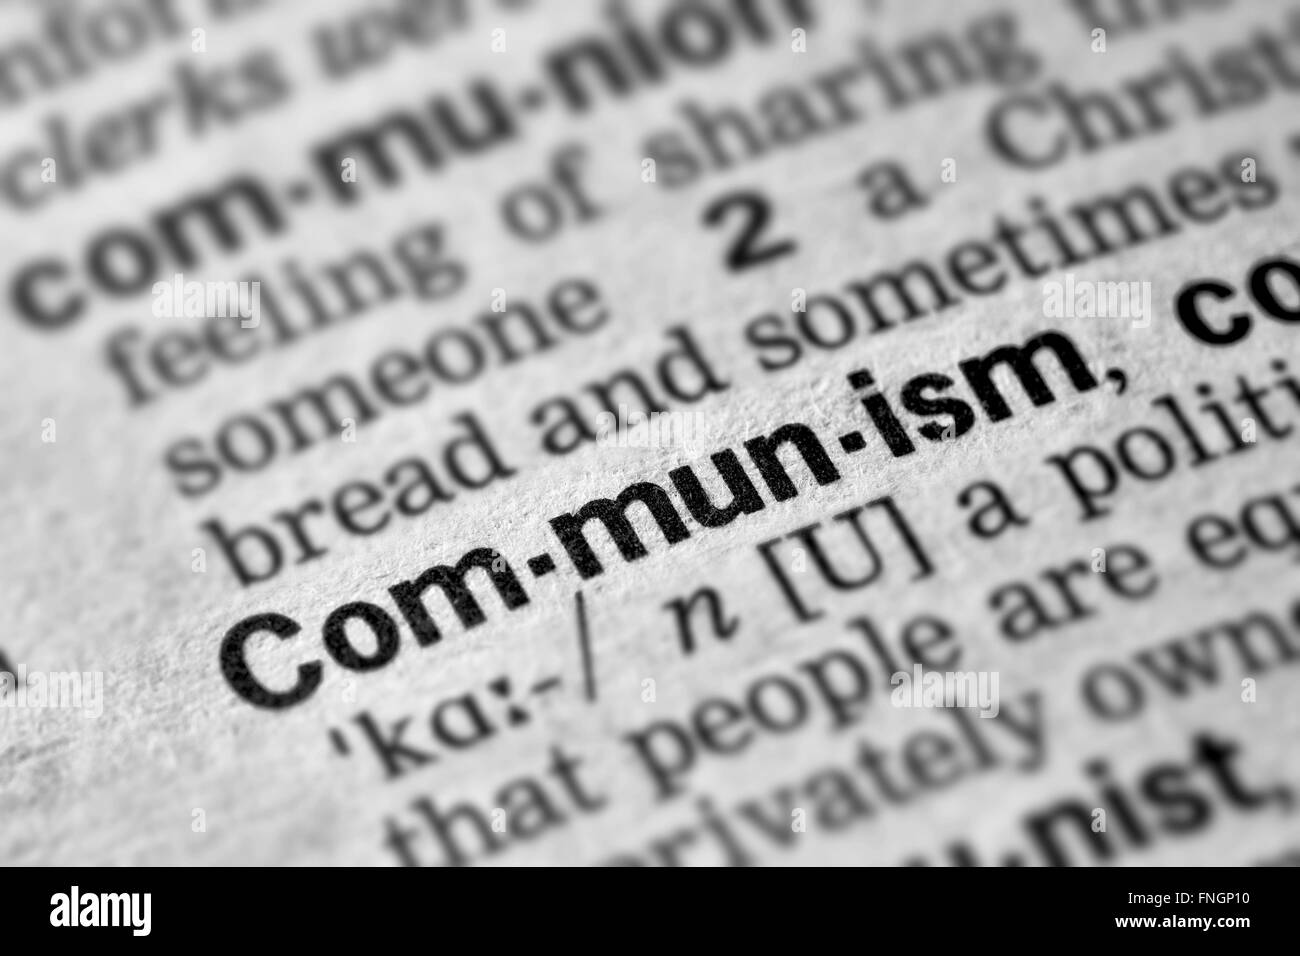 Communism Word Definition Text in Dictionary Page - Stock Image